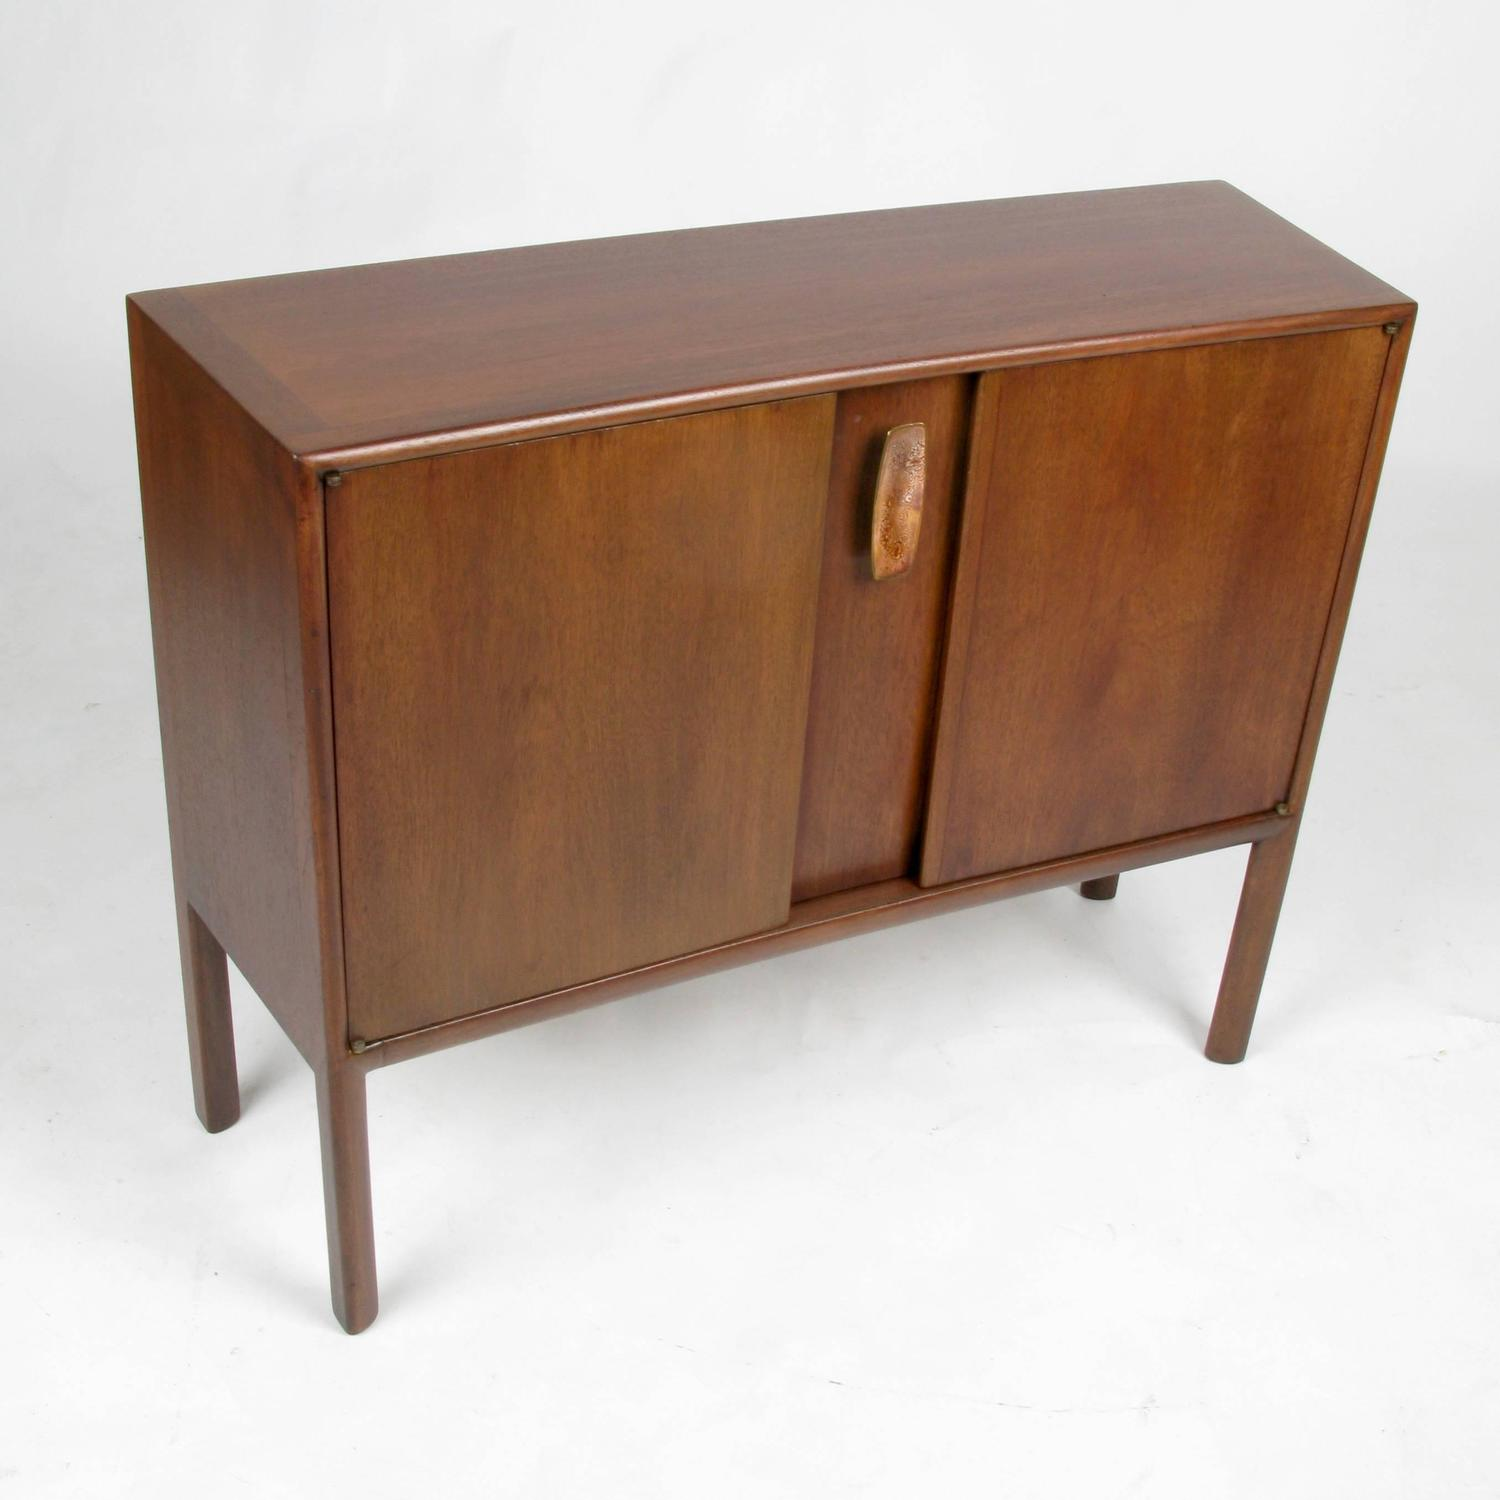 petite ray sabota walnut console at 1stdibs. Black Bedroom Furniture Sets. Home Design Ideas